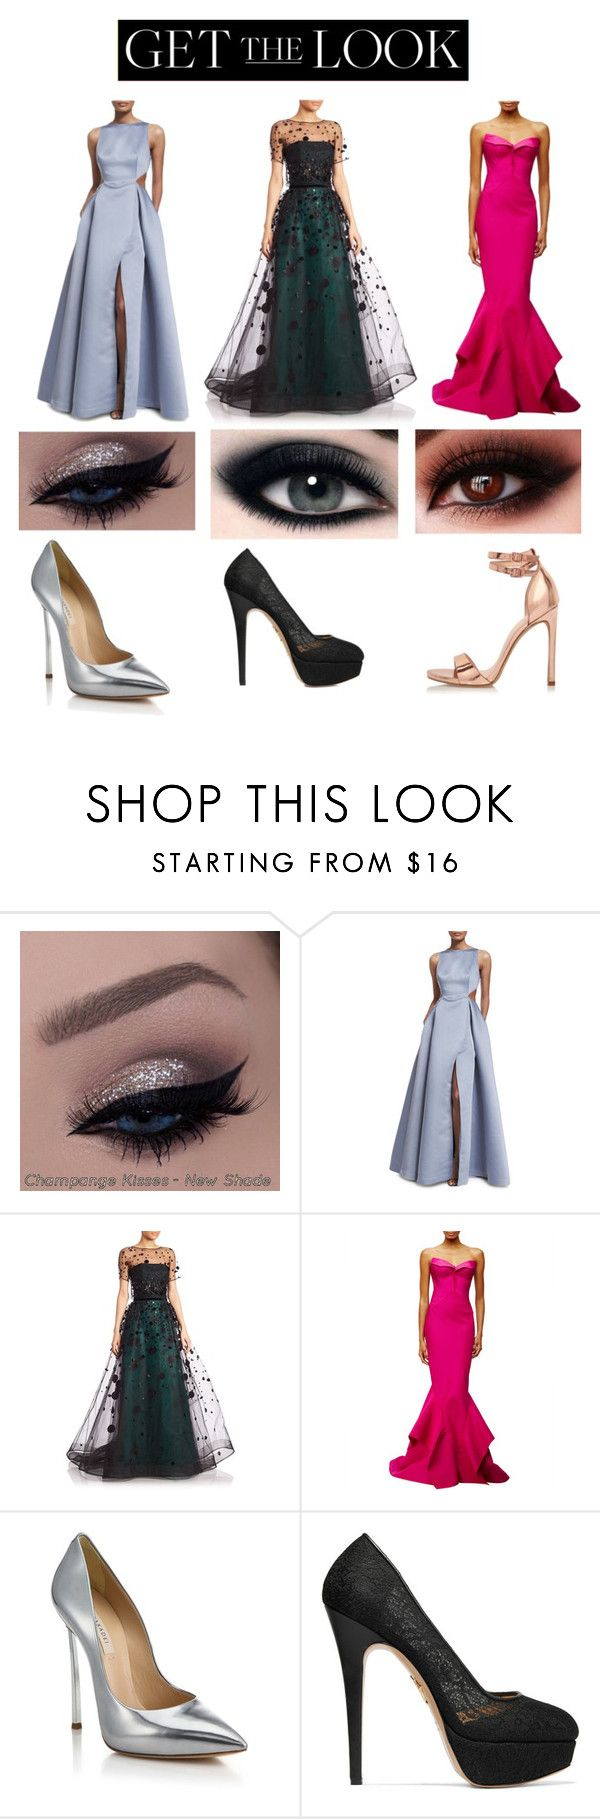 """""""Get the Look: Met Gala 2016"""" by fashion-feed ❤ liked on Polyvore featuring Halston Heritage, Carolina Herrera, Zac Posen, Casadei, Charlotte Olympia, River Island, GetTheLook and MetGala"""